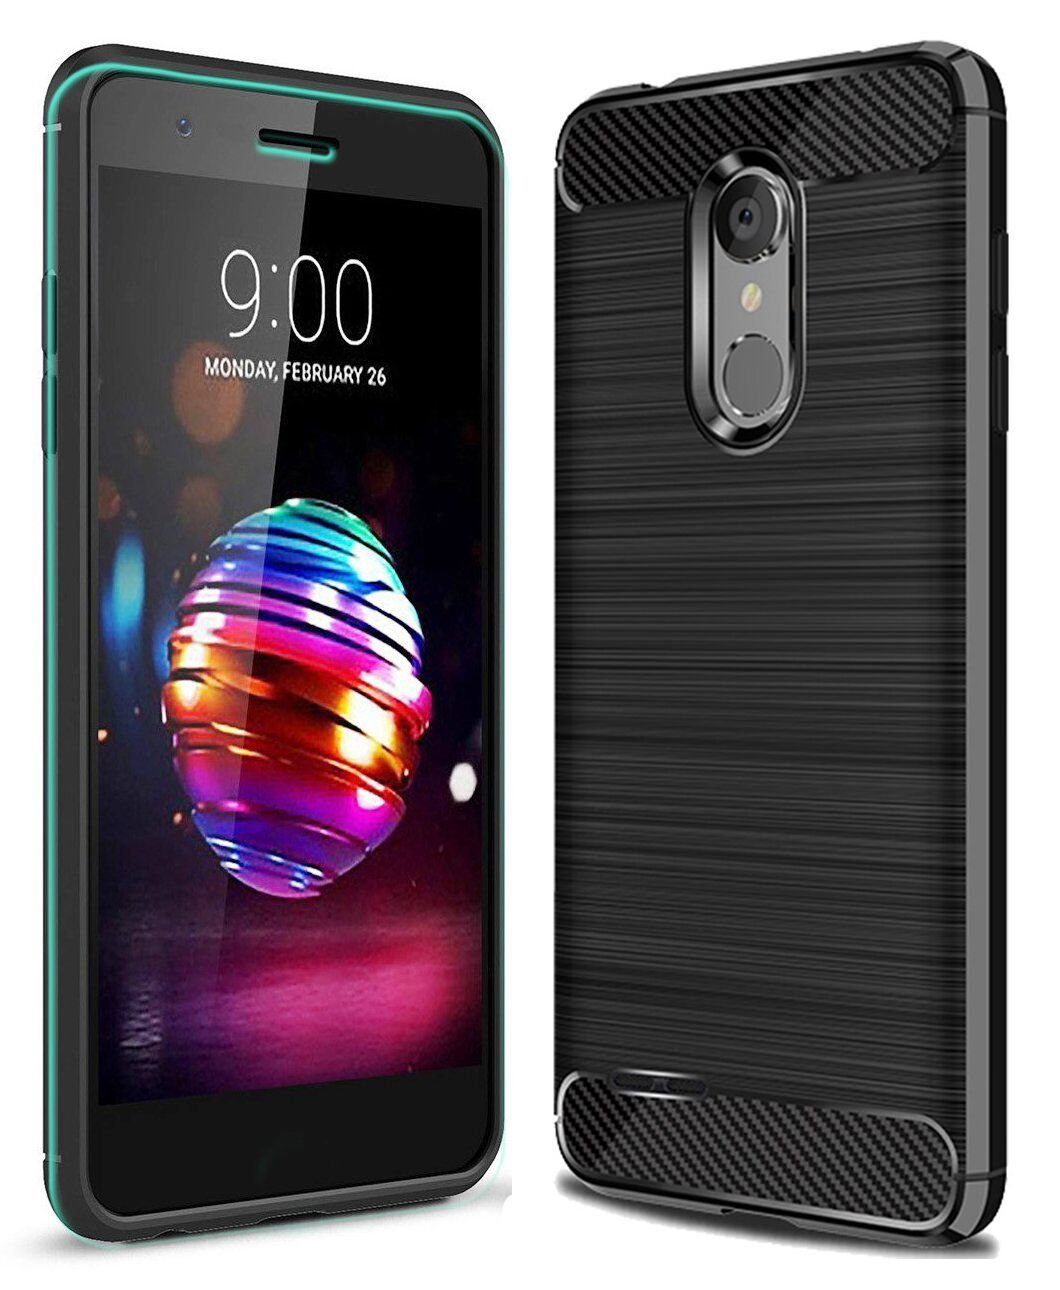 LG K10 2018 Case, LG K30 Case with HD Screen Protector Ucc Frosted Shield Luxury Slim TPU Bumper Cover Carbon Fiber Design and Anti-Scratch and Non-Slip Case Cover for LG K10 2018 (Black)